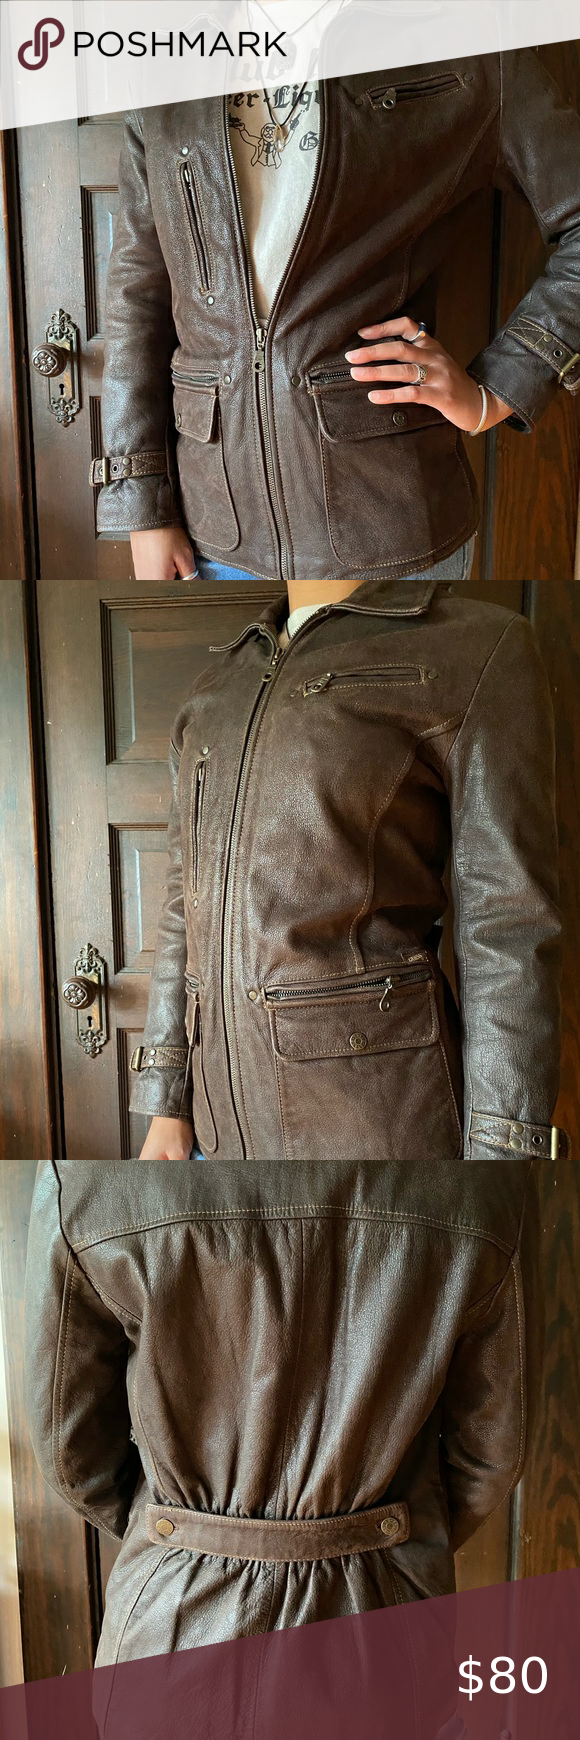 Vintage Guess Leather Jacket In 2020 Leather Jacket Leather Jackets [ 1740 x 580 Pixel ]